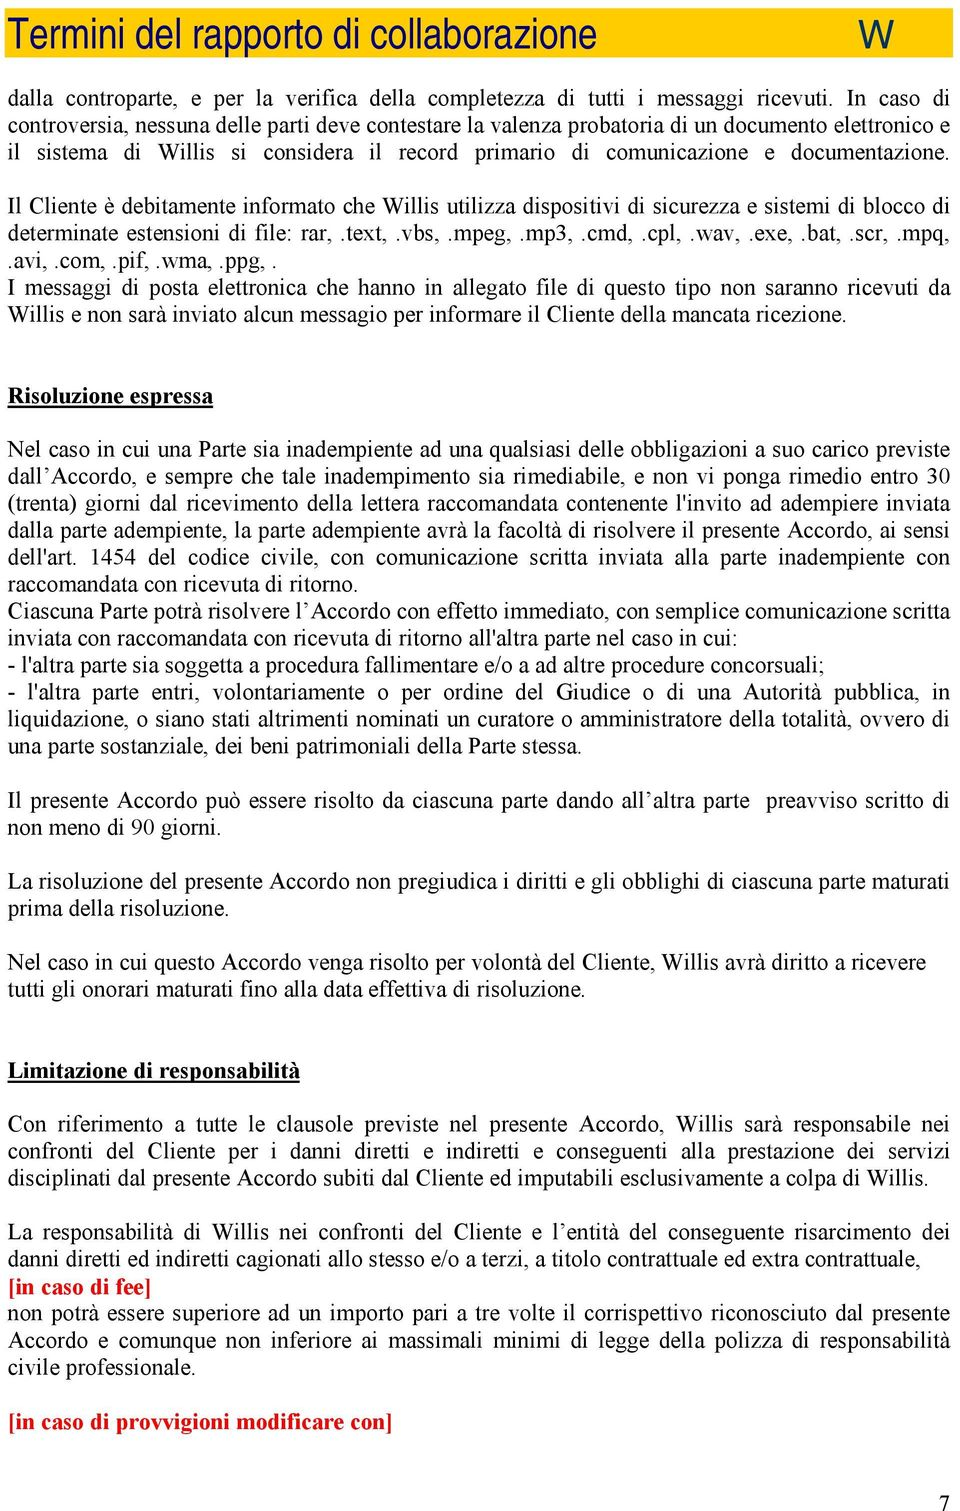 Il Cliente è debitamente informato che illis utilizza dispositivi di sicurezza e sistemi di blocco di determinate estensioni di file: rar,.text,.vbs,.mpeg,.mp3,.cmd,.cpl,.wav,.exe,.bat,.scr,.mpq,.